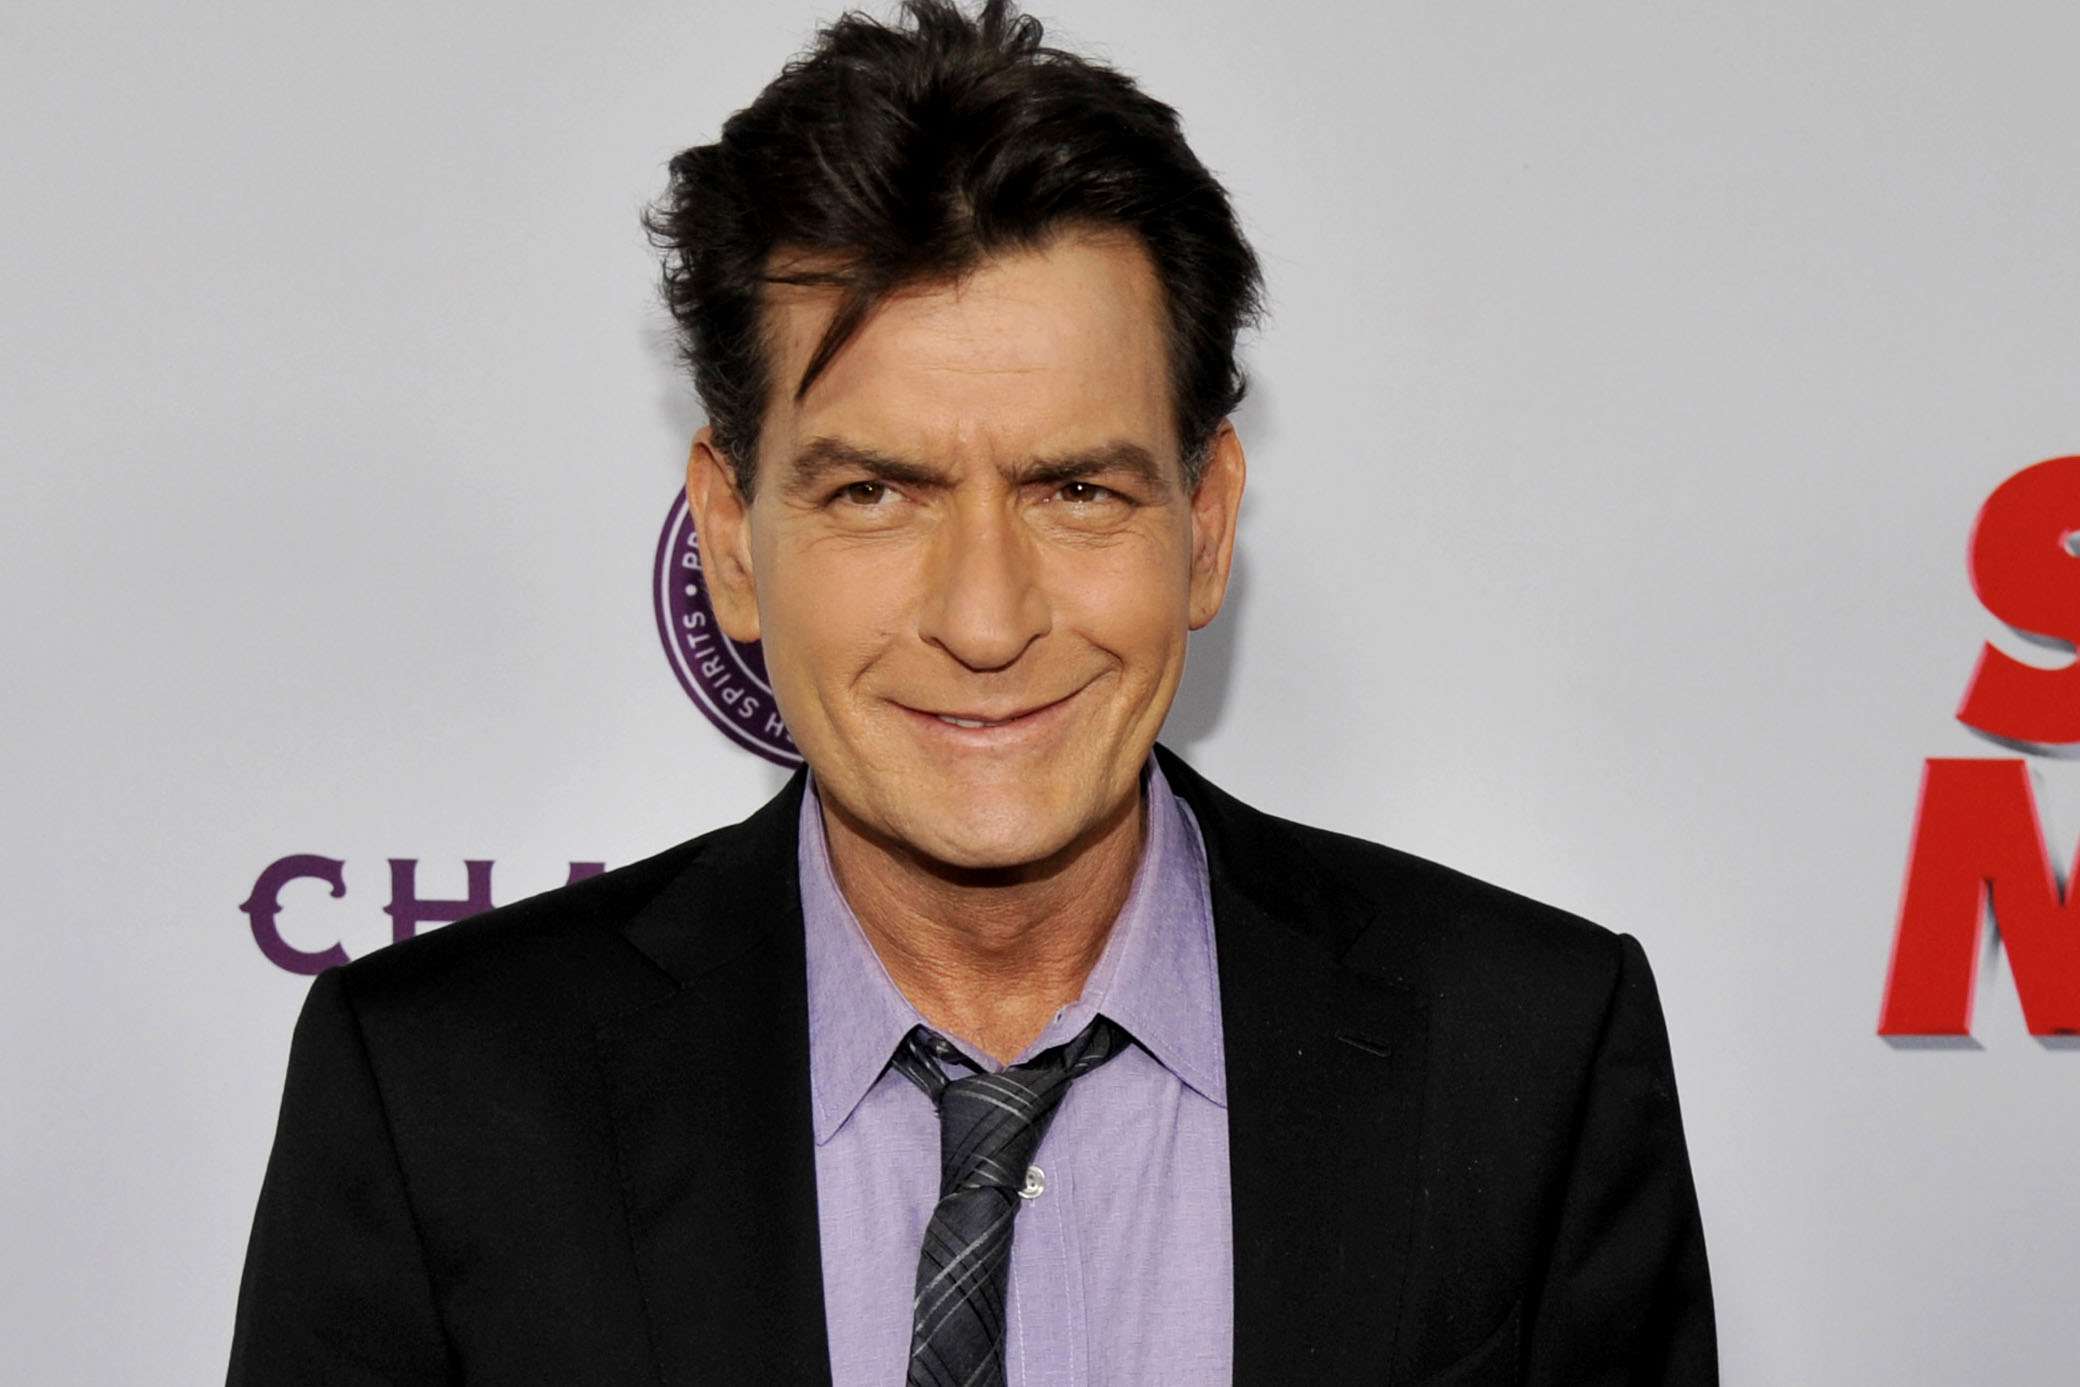 Photo of 10 Lesser Known Facts About King of Controversies: Charlie Sheen